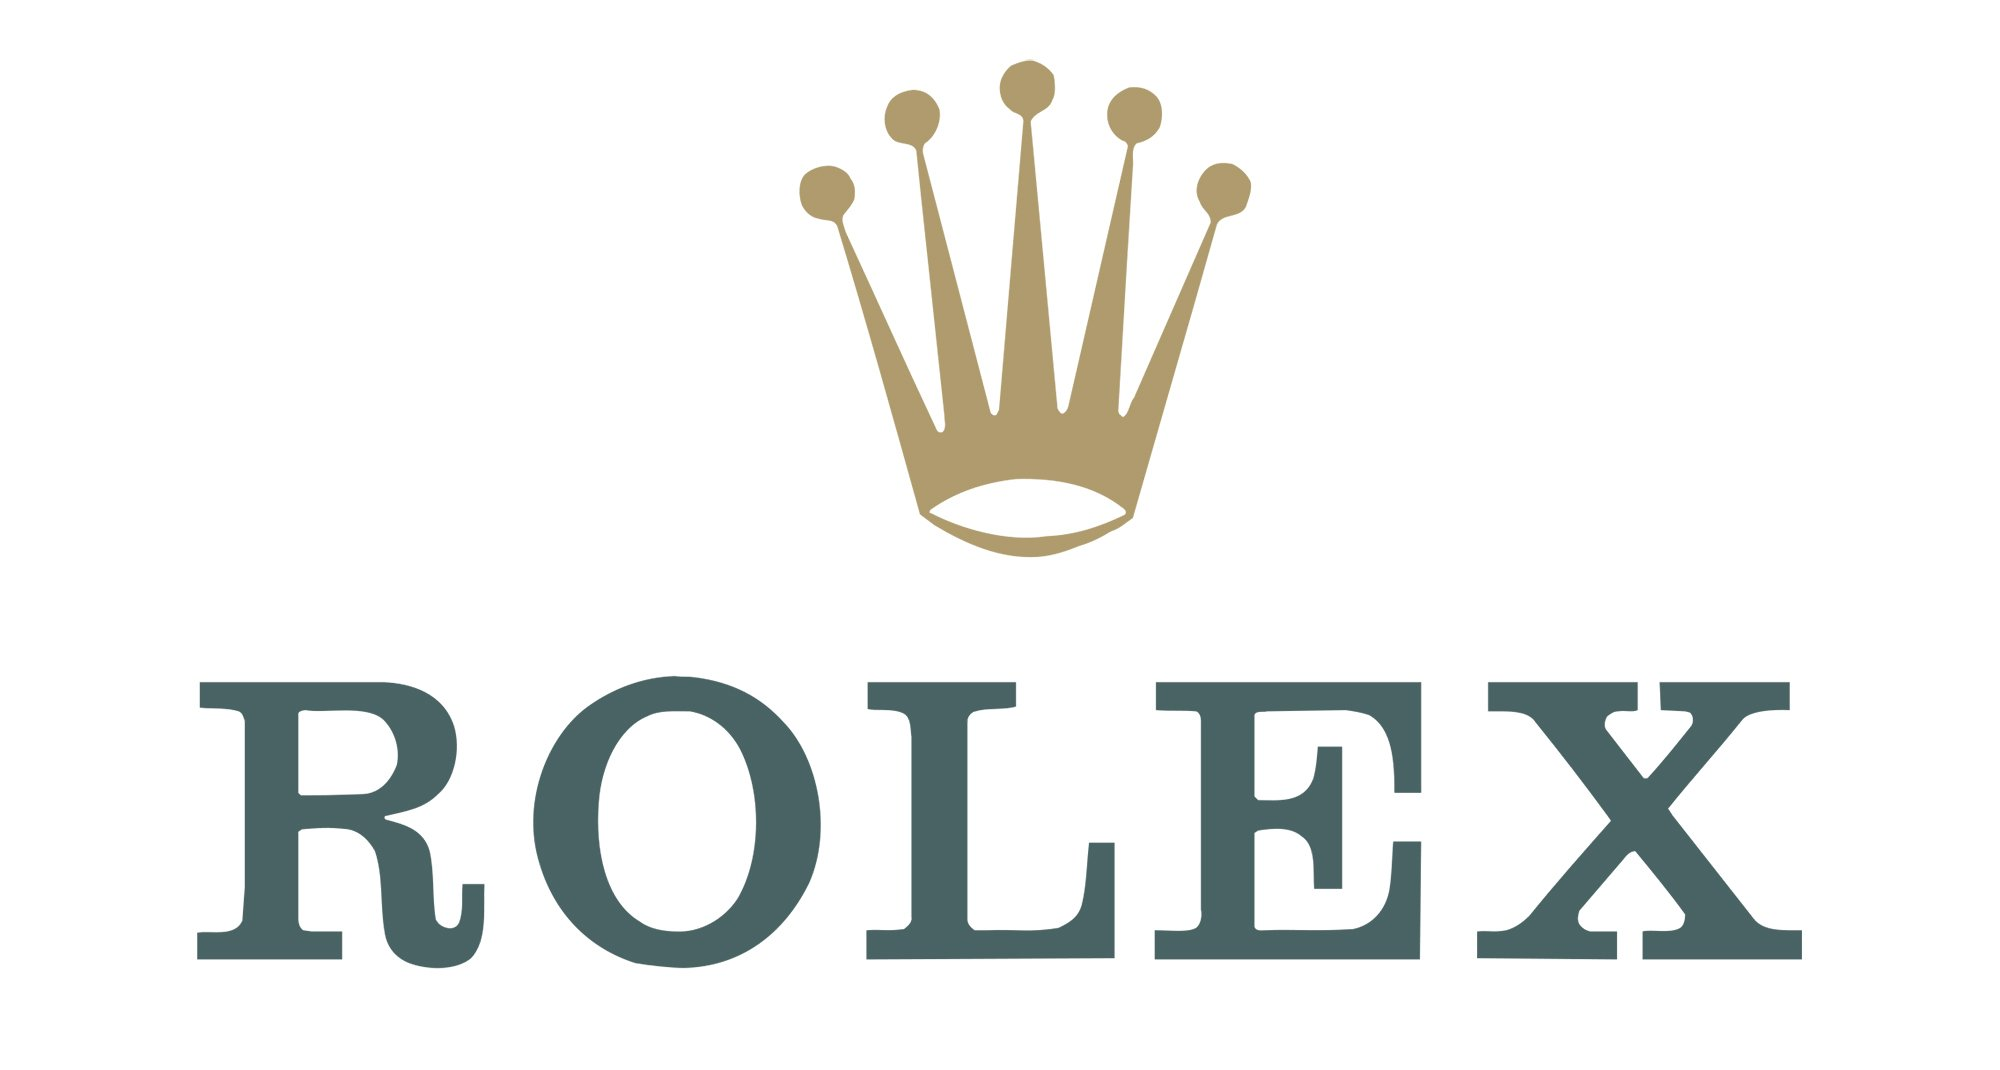 Rolex logo rolex symbol meaning history and evolution rolex emblem the original logo included a golden crown and a green wordmark complemented with a golden outline in 1965 the symbol acquired a bronze hue biocorpaavc Choice Image